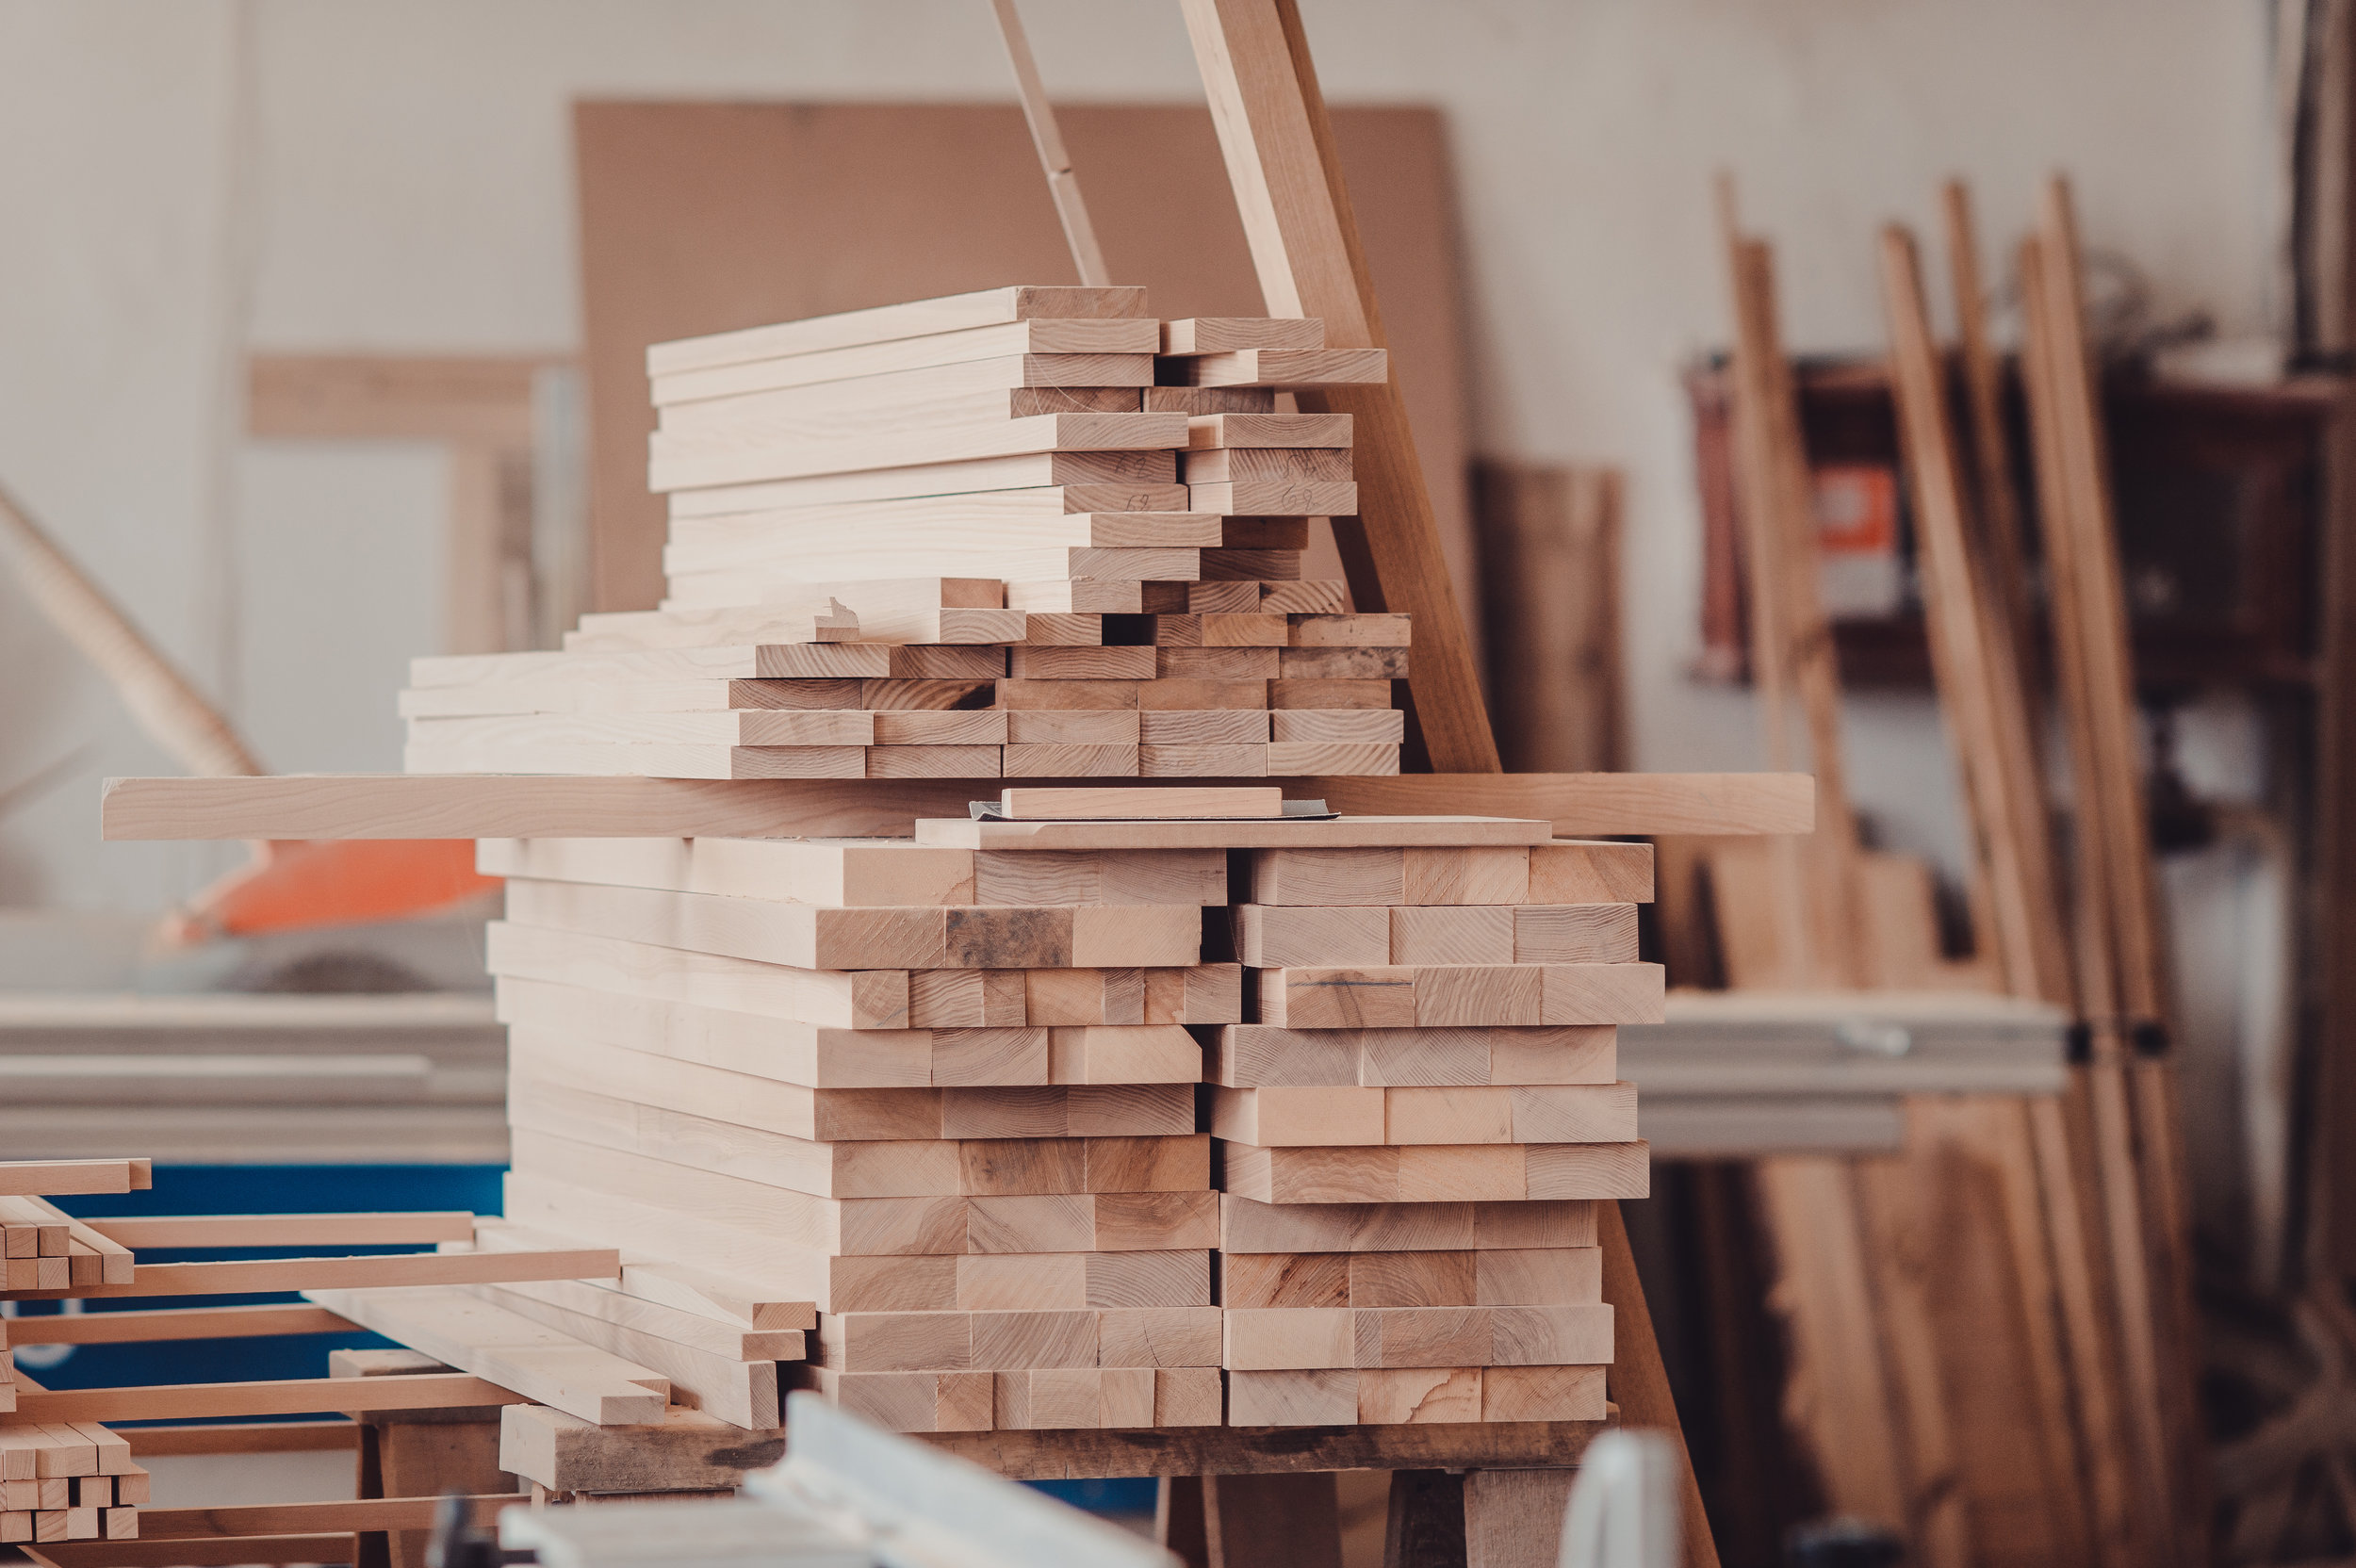 No More Stockouts - Never run out of raw materials and ready-made furniture to sell. Use your sales data and plan ahead by adjusting your safety stock.